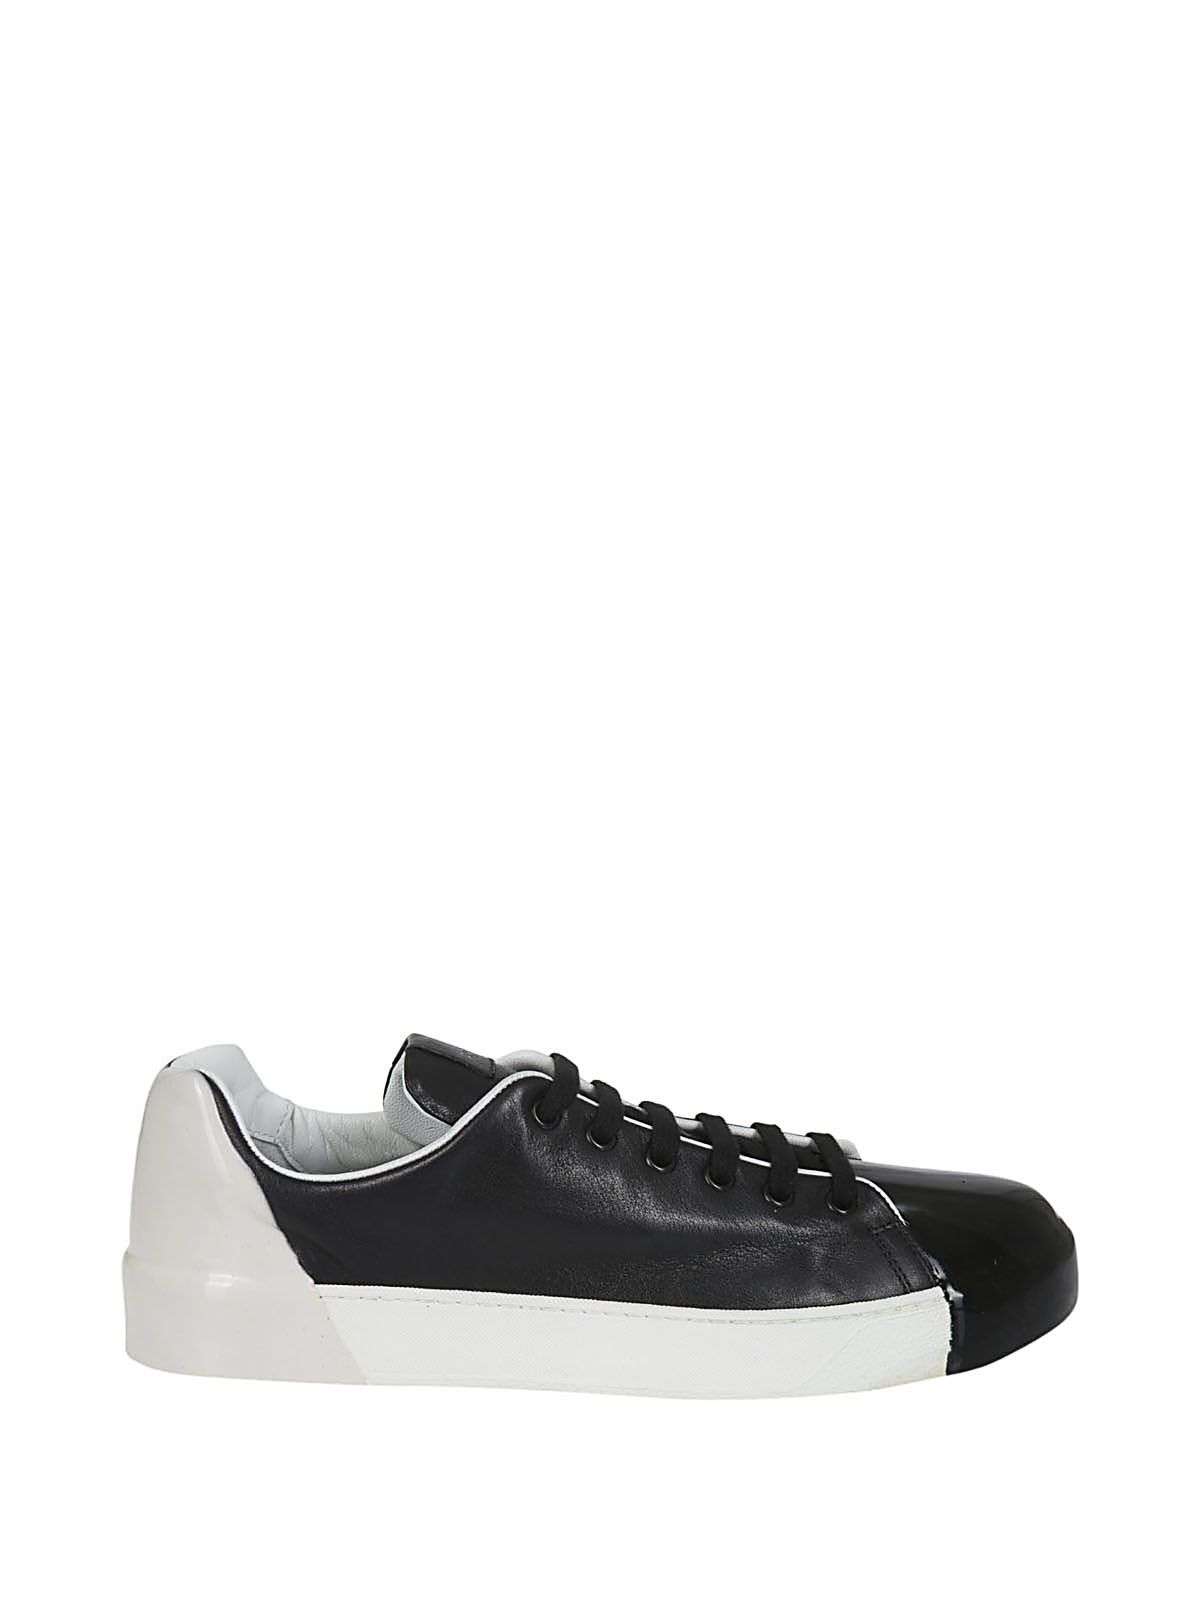 Premiata Contrast Lace-up Sneakers